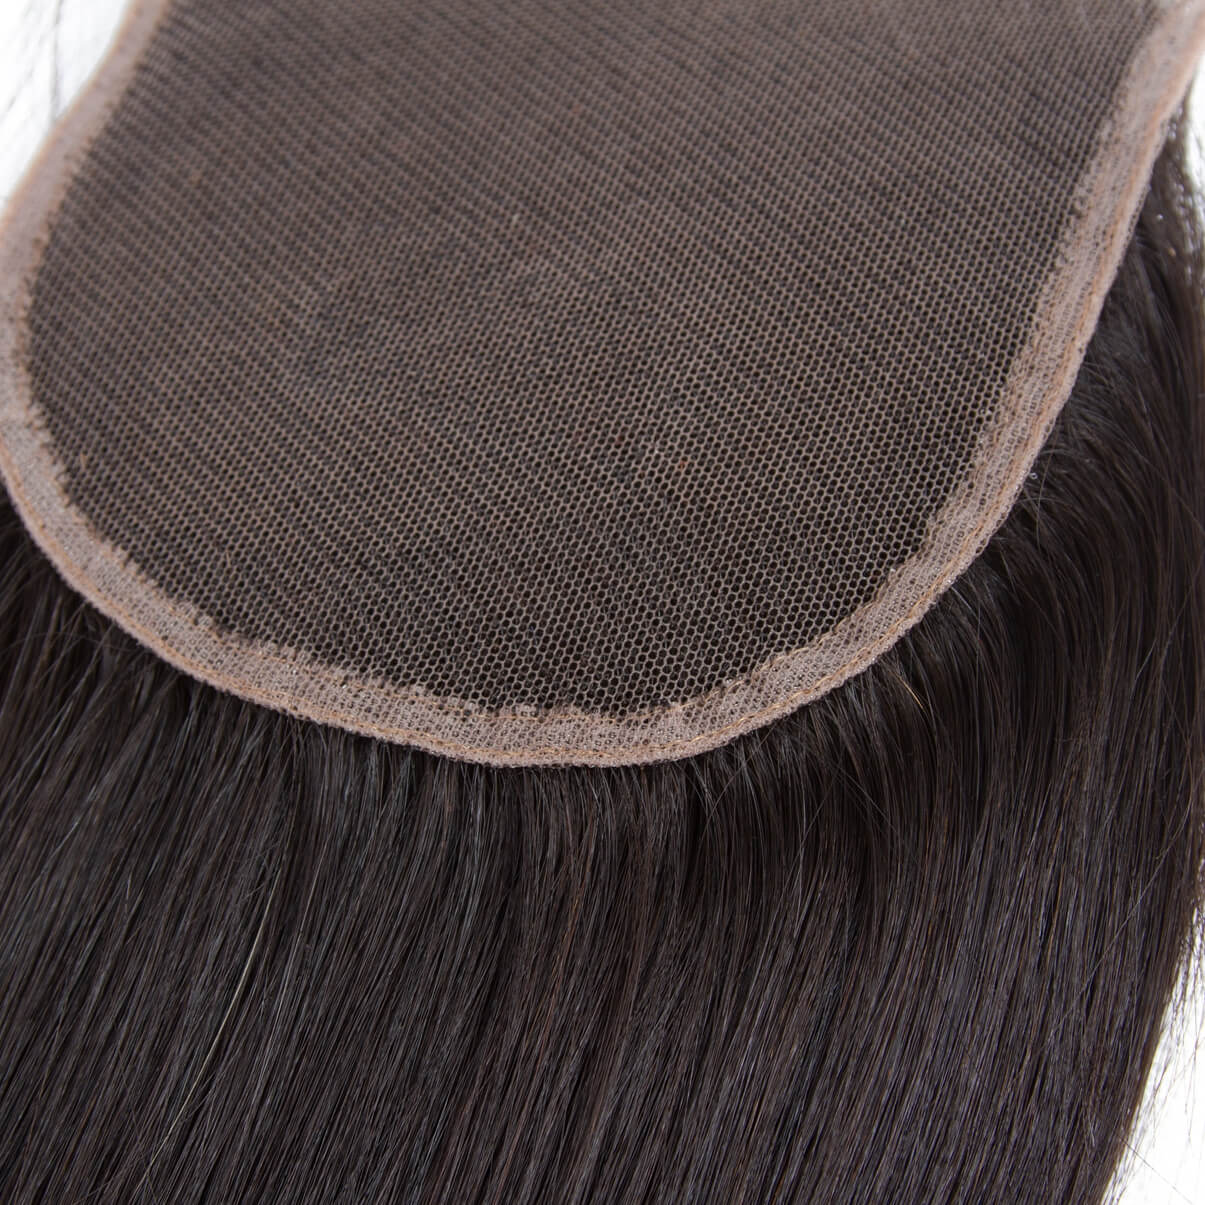 Lakihair 8A Brazilian Unprocessed Virgin Human Straight Hair 4 Bundles With Lace Closure 4x4